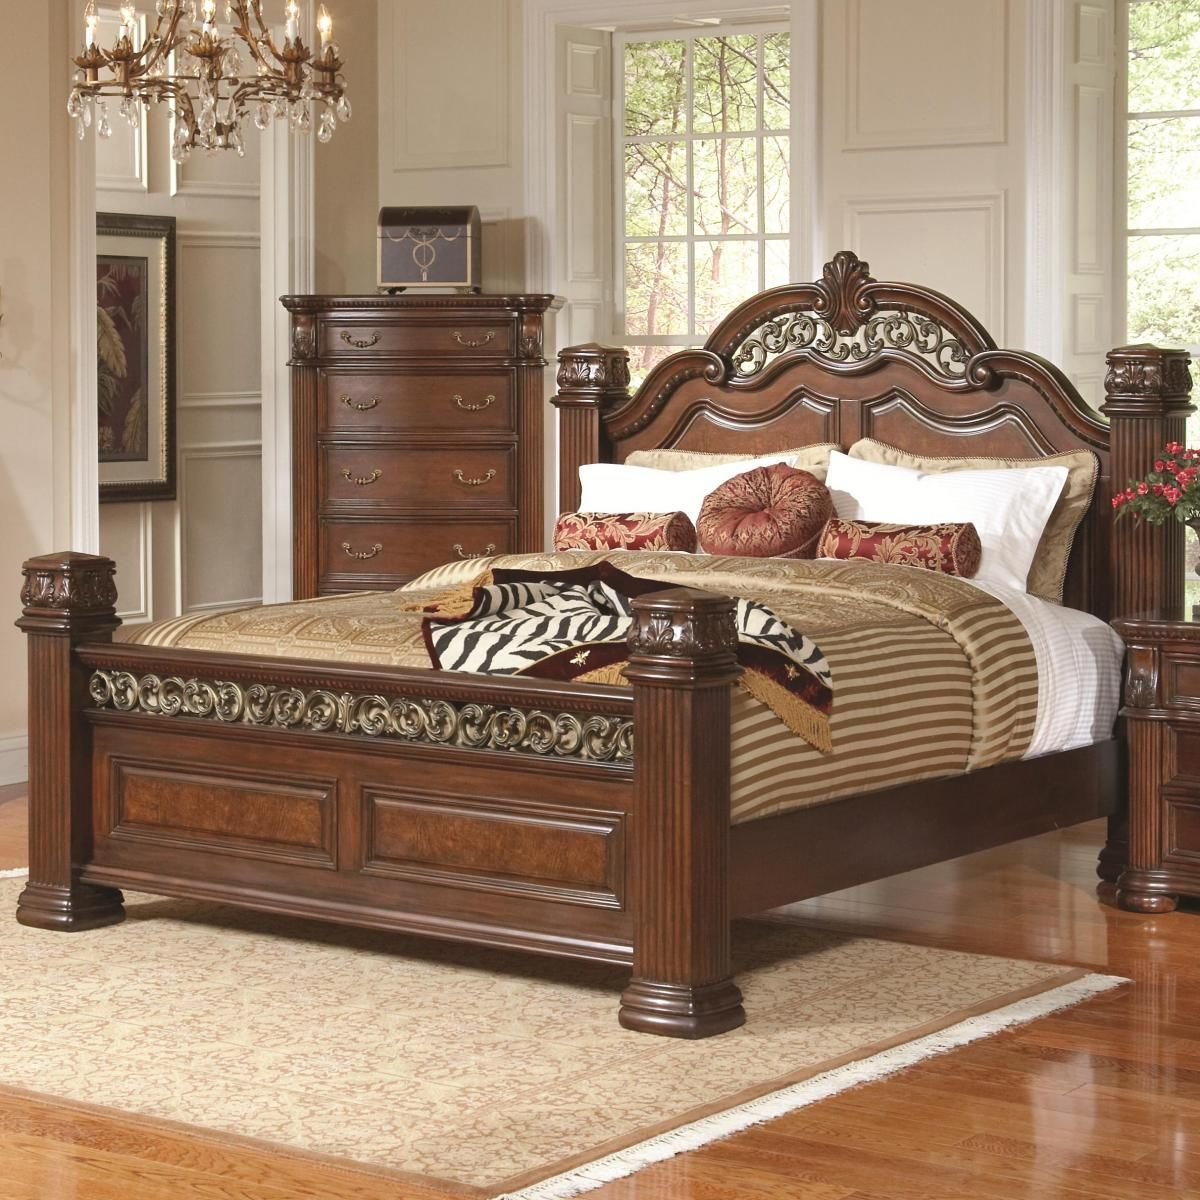 Beambeds 200 200 With Images Bed Design Wooden Bed Bed Frame